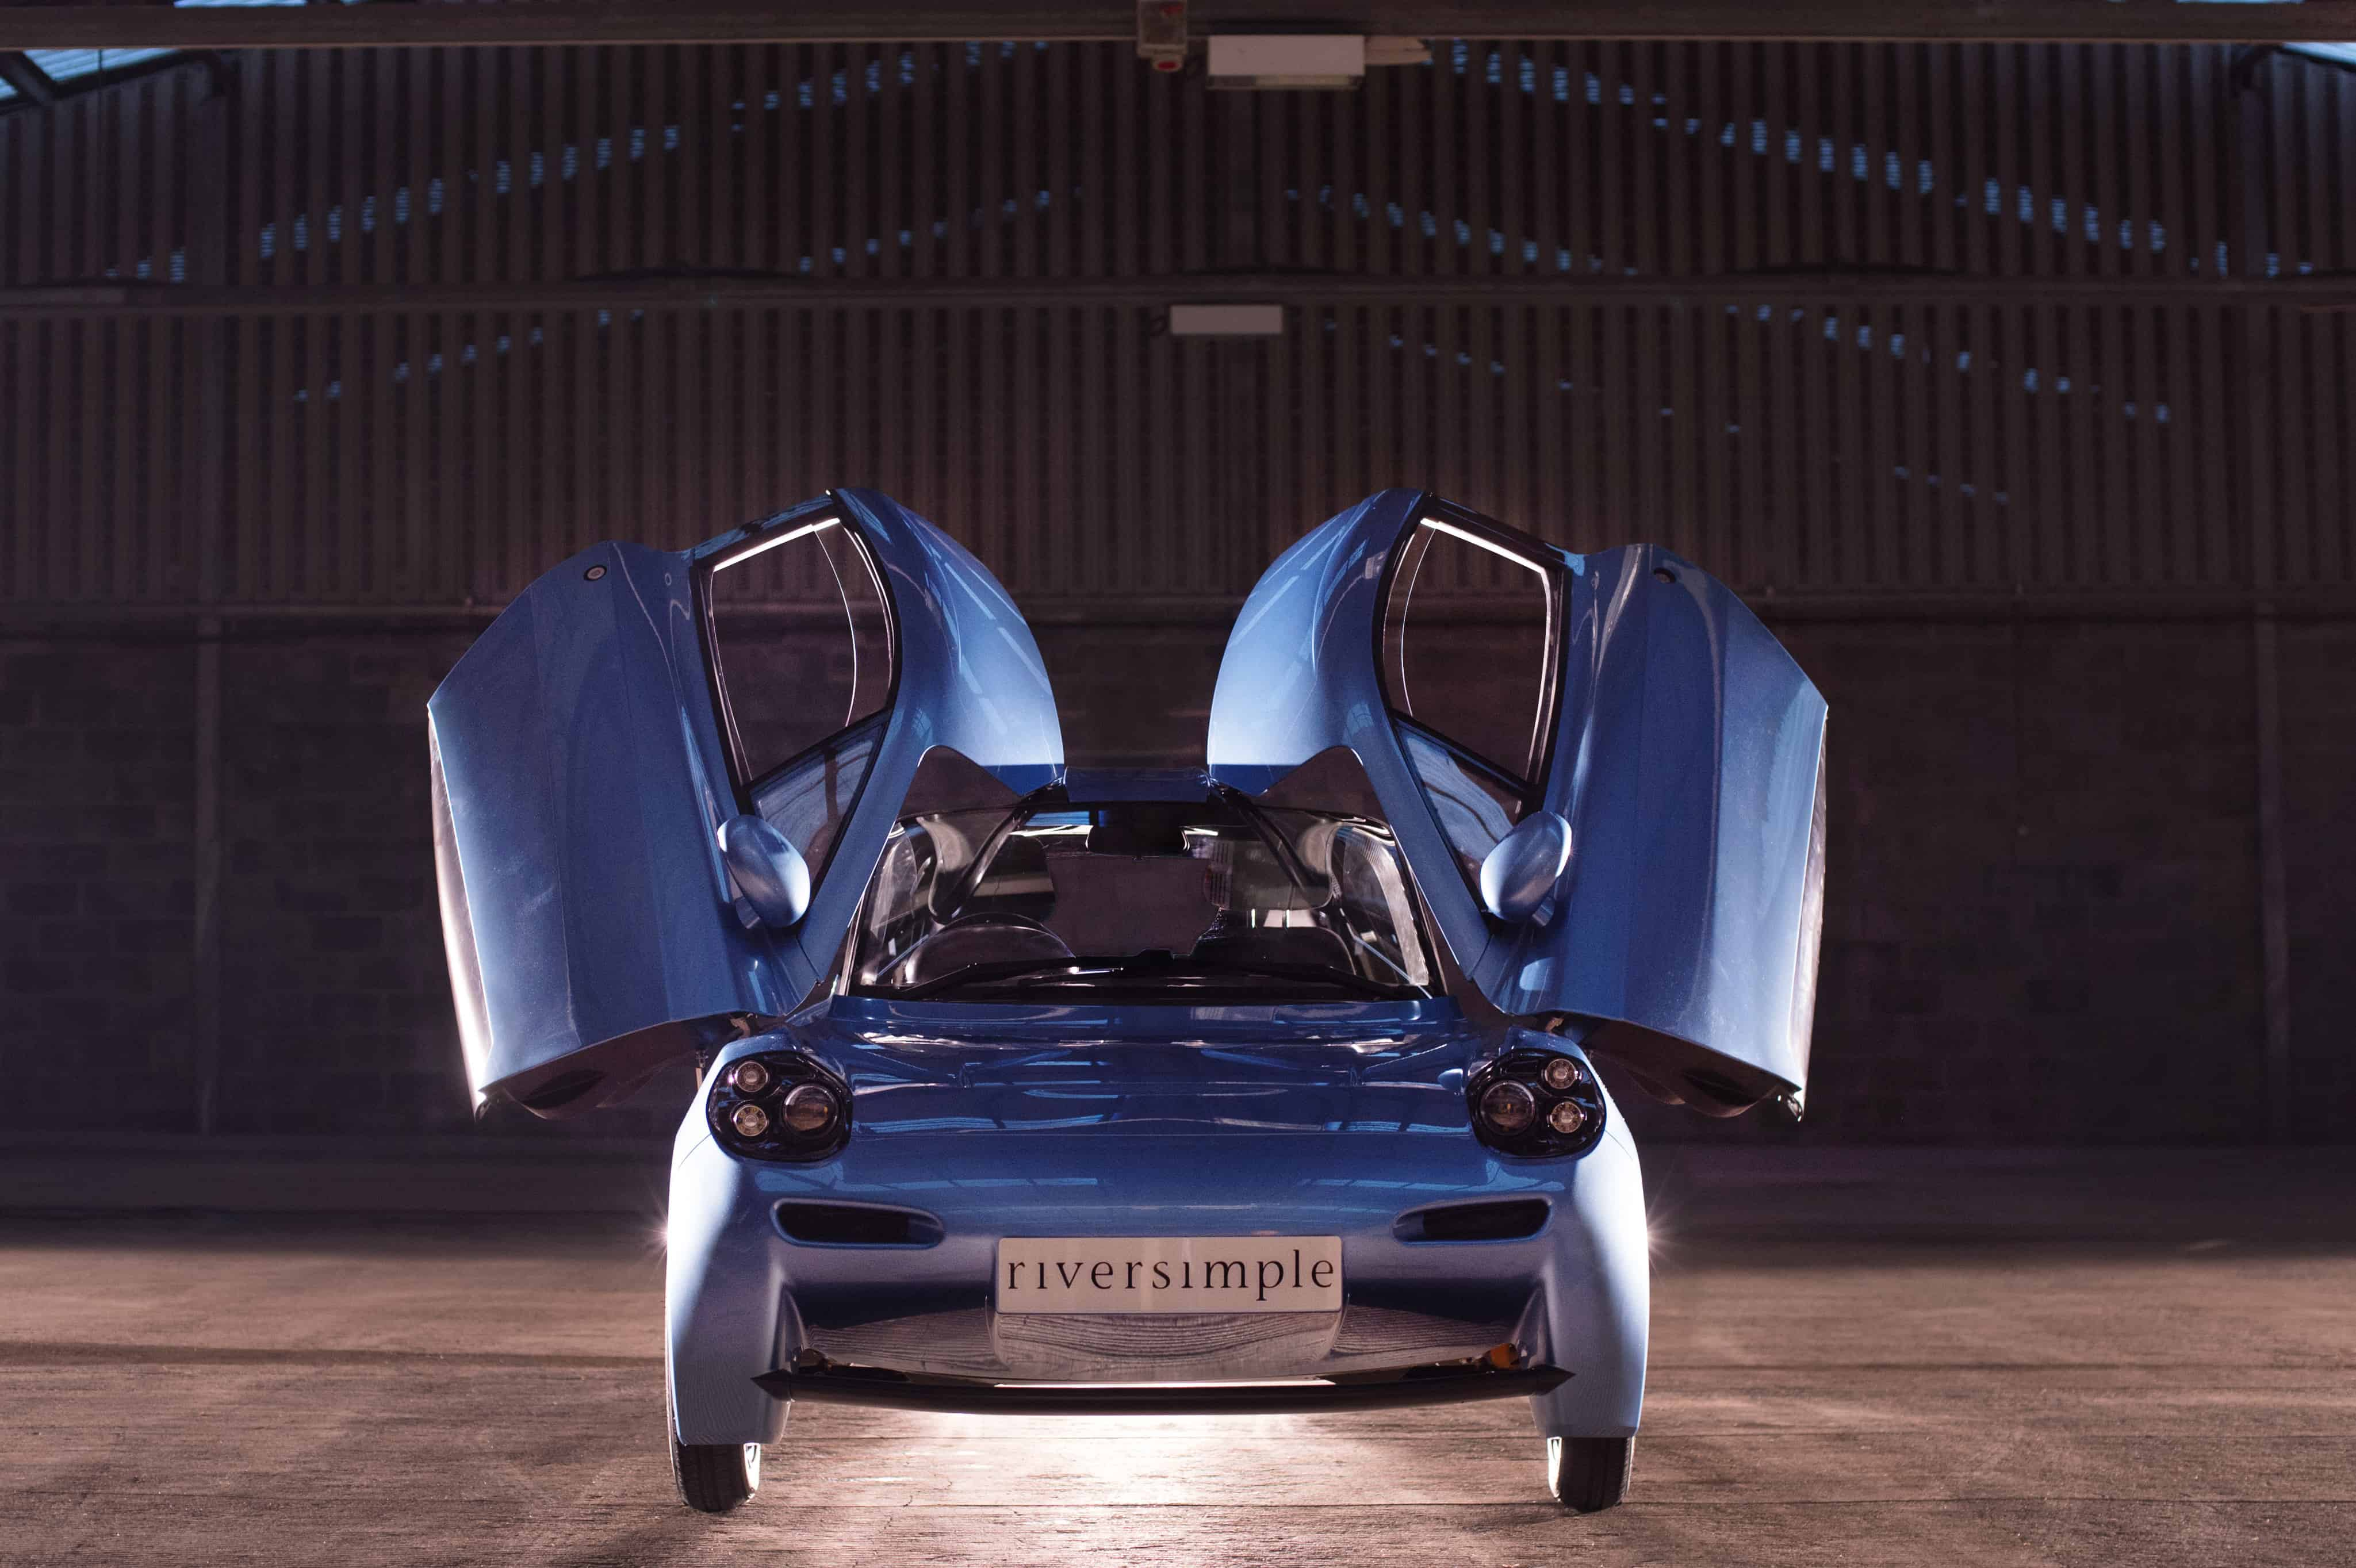 RIVERSIMPLE RASA - FRONT WITH BUTTERFLY DOORS OPEN - HIGH RES